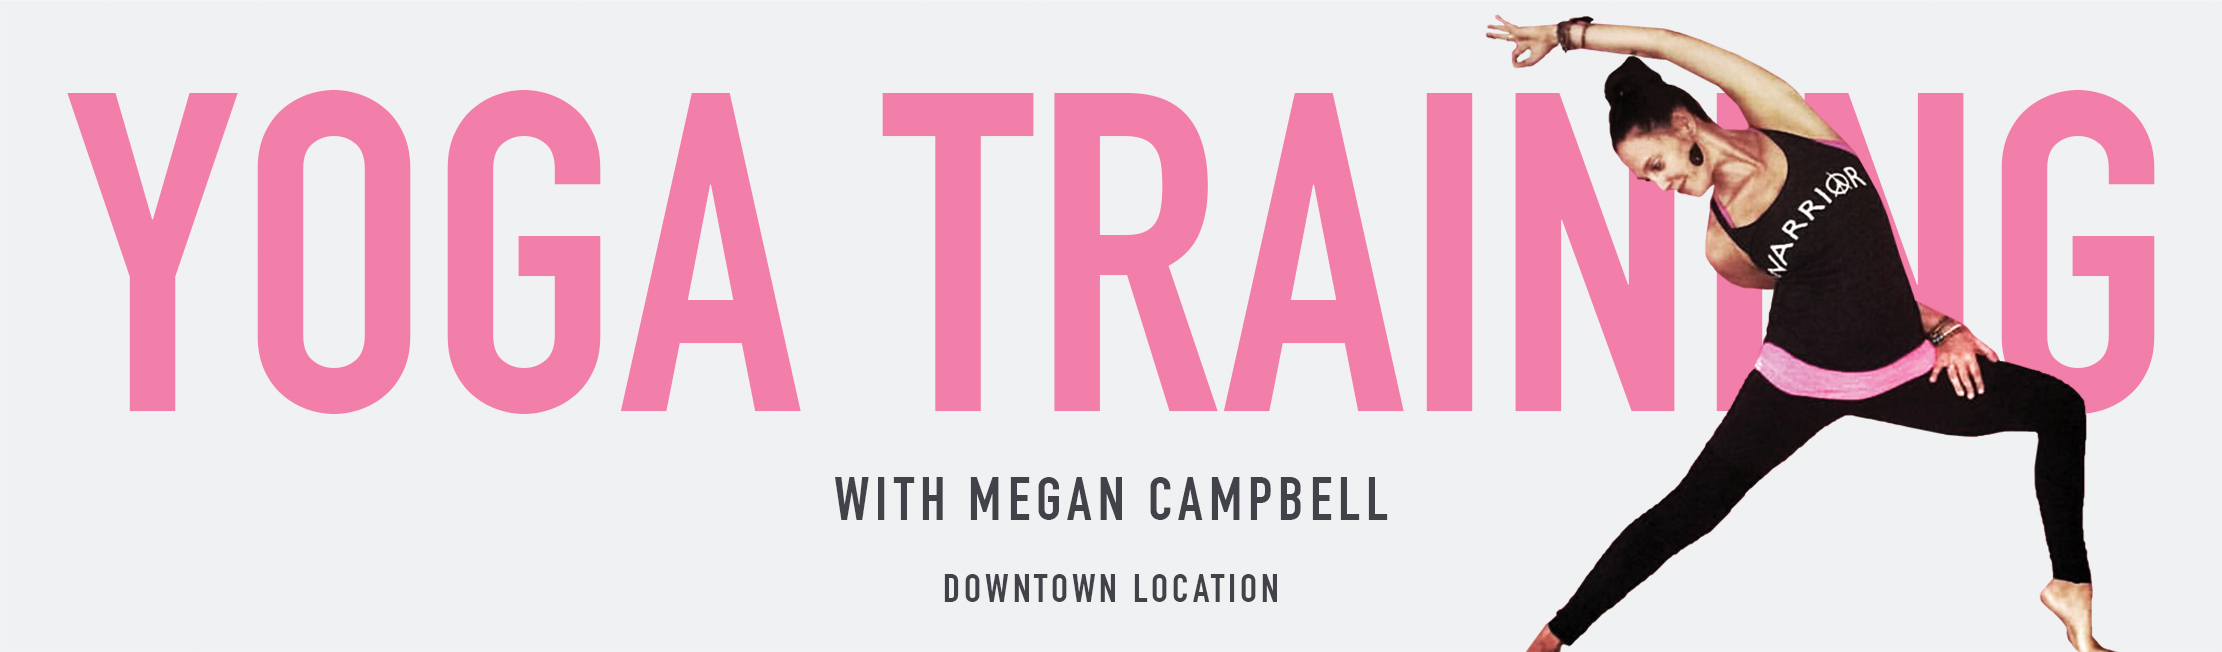 Megan campbell banner updated